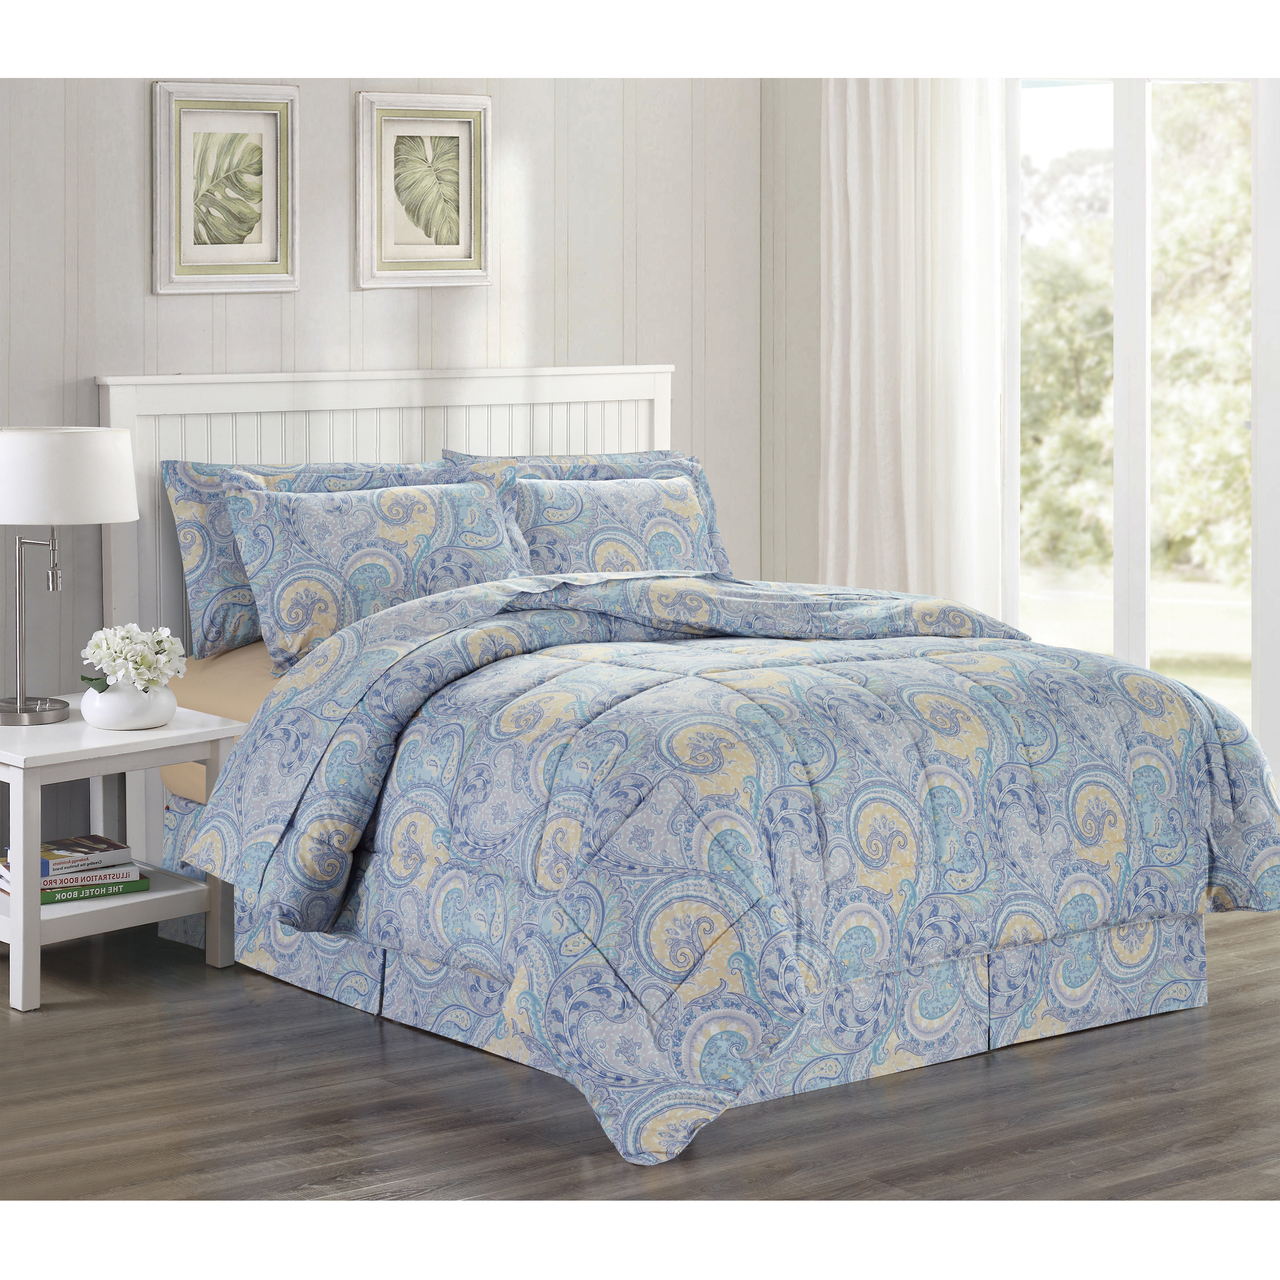 Ultra Soft Microfiber 8 PC Paisley Scroll Printed Down Alternative Bed In A  Bag, Bedding